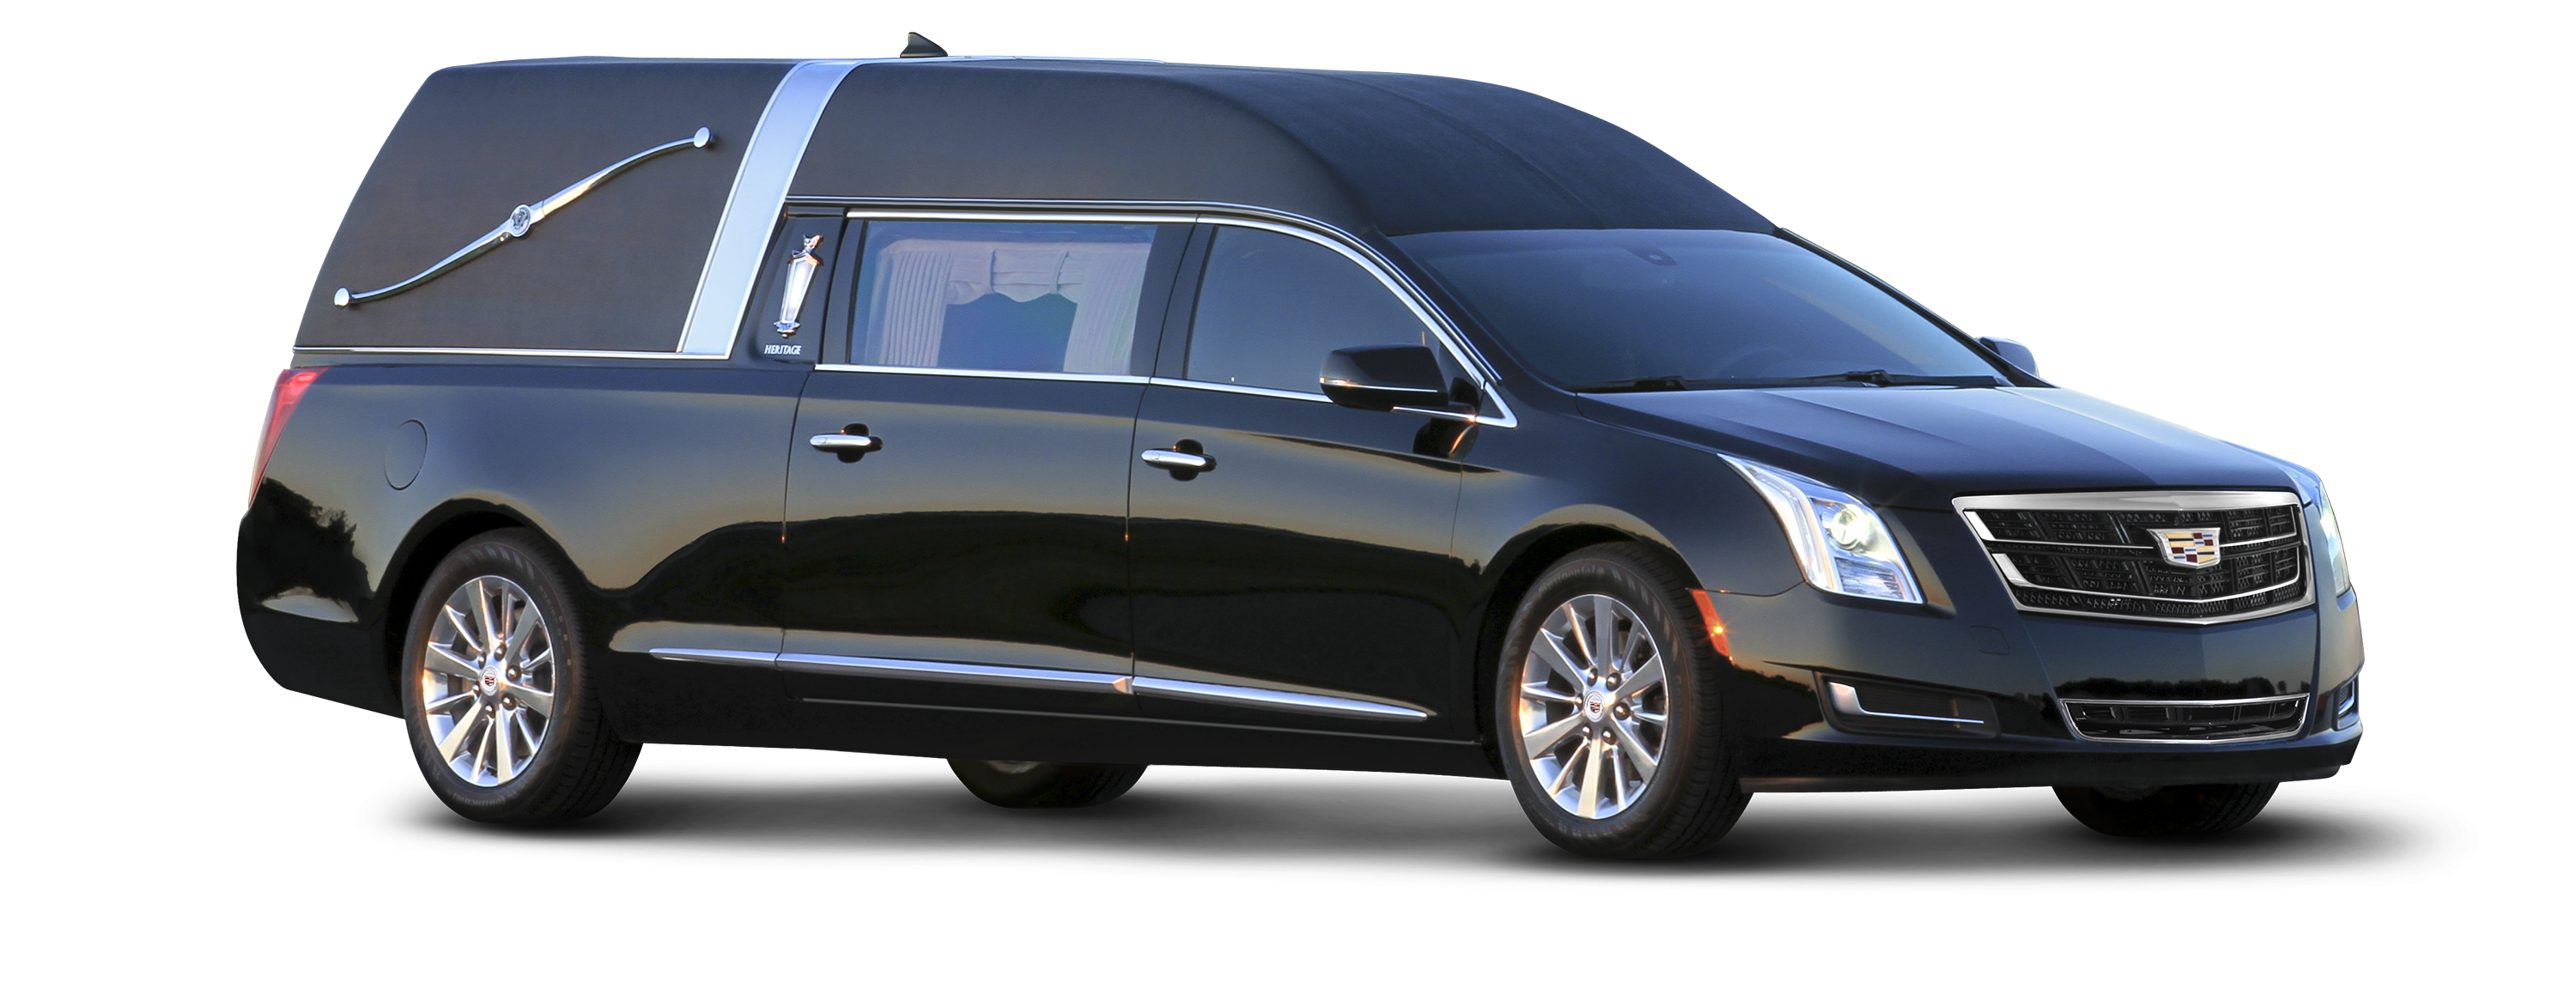 2016 cadillac xts heritage funeral car store. Black Bedroom Furniture Sets. Home Design Ideas